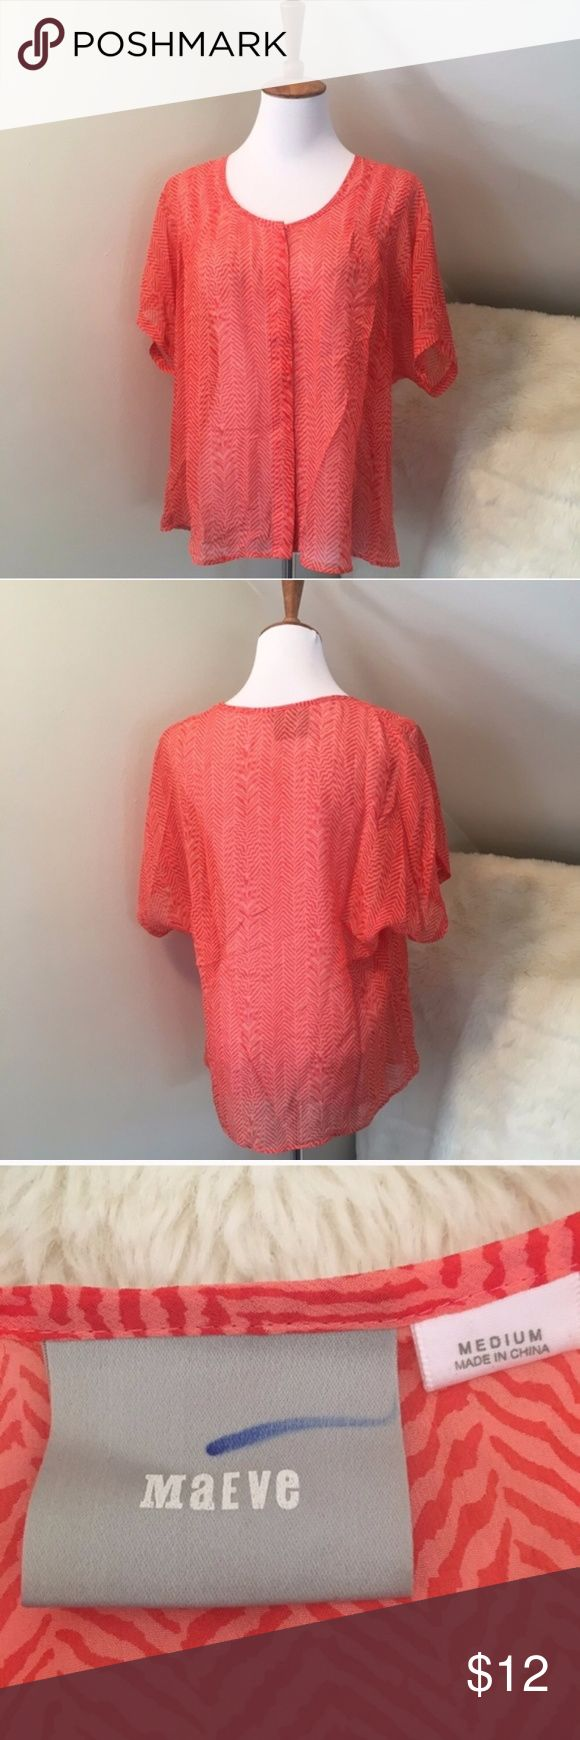 """Maeve Orange Striped Abatract Silk Blouse Medium Great condition with no flaws. 100% silk. Sheer. Striped zebra like abstract design. Scoop neck. Hidden button down front. Flowy fit.  20"""" across the bust and 26"""" long.  Bundles encouraged.  PRICE FIRM. Anthropologie Tops Blouses"""